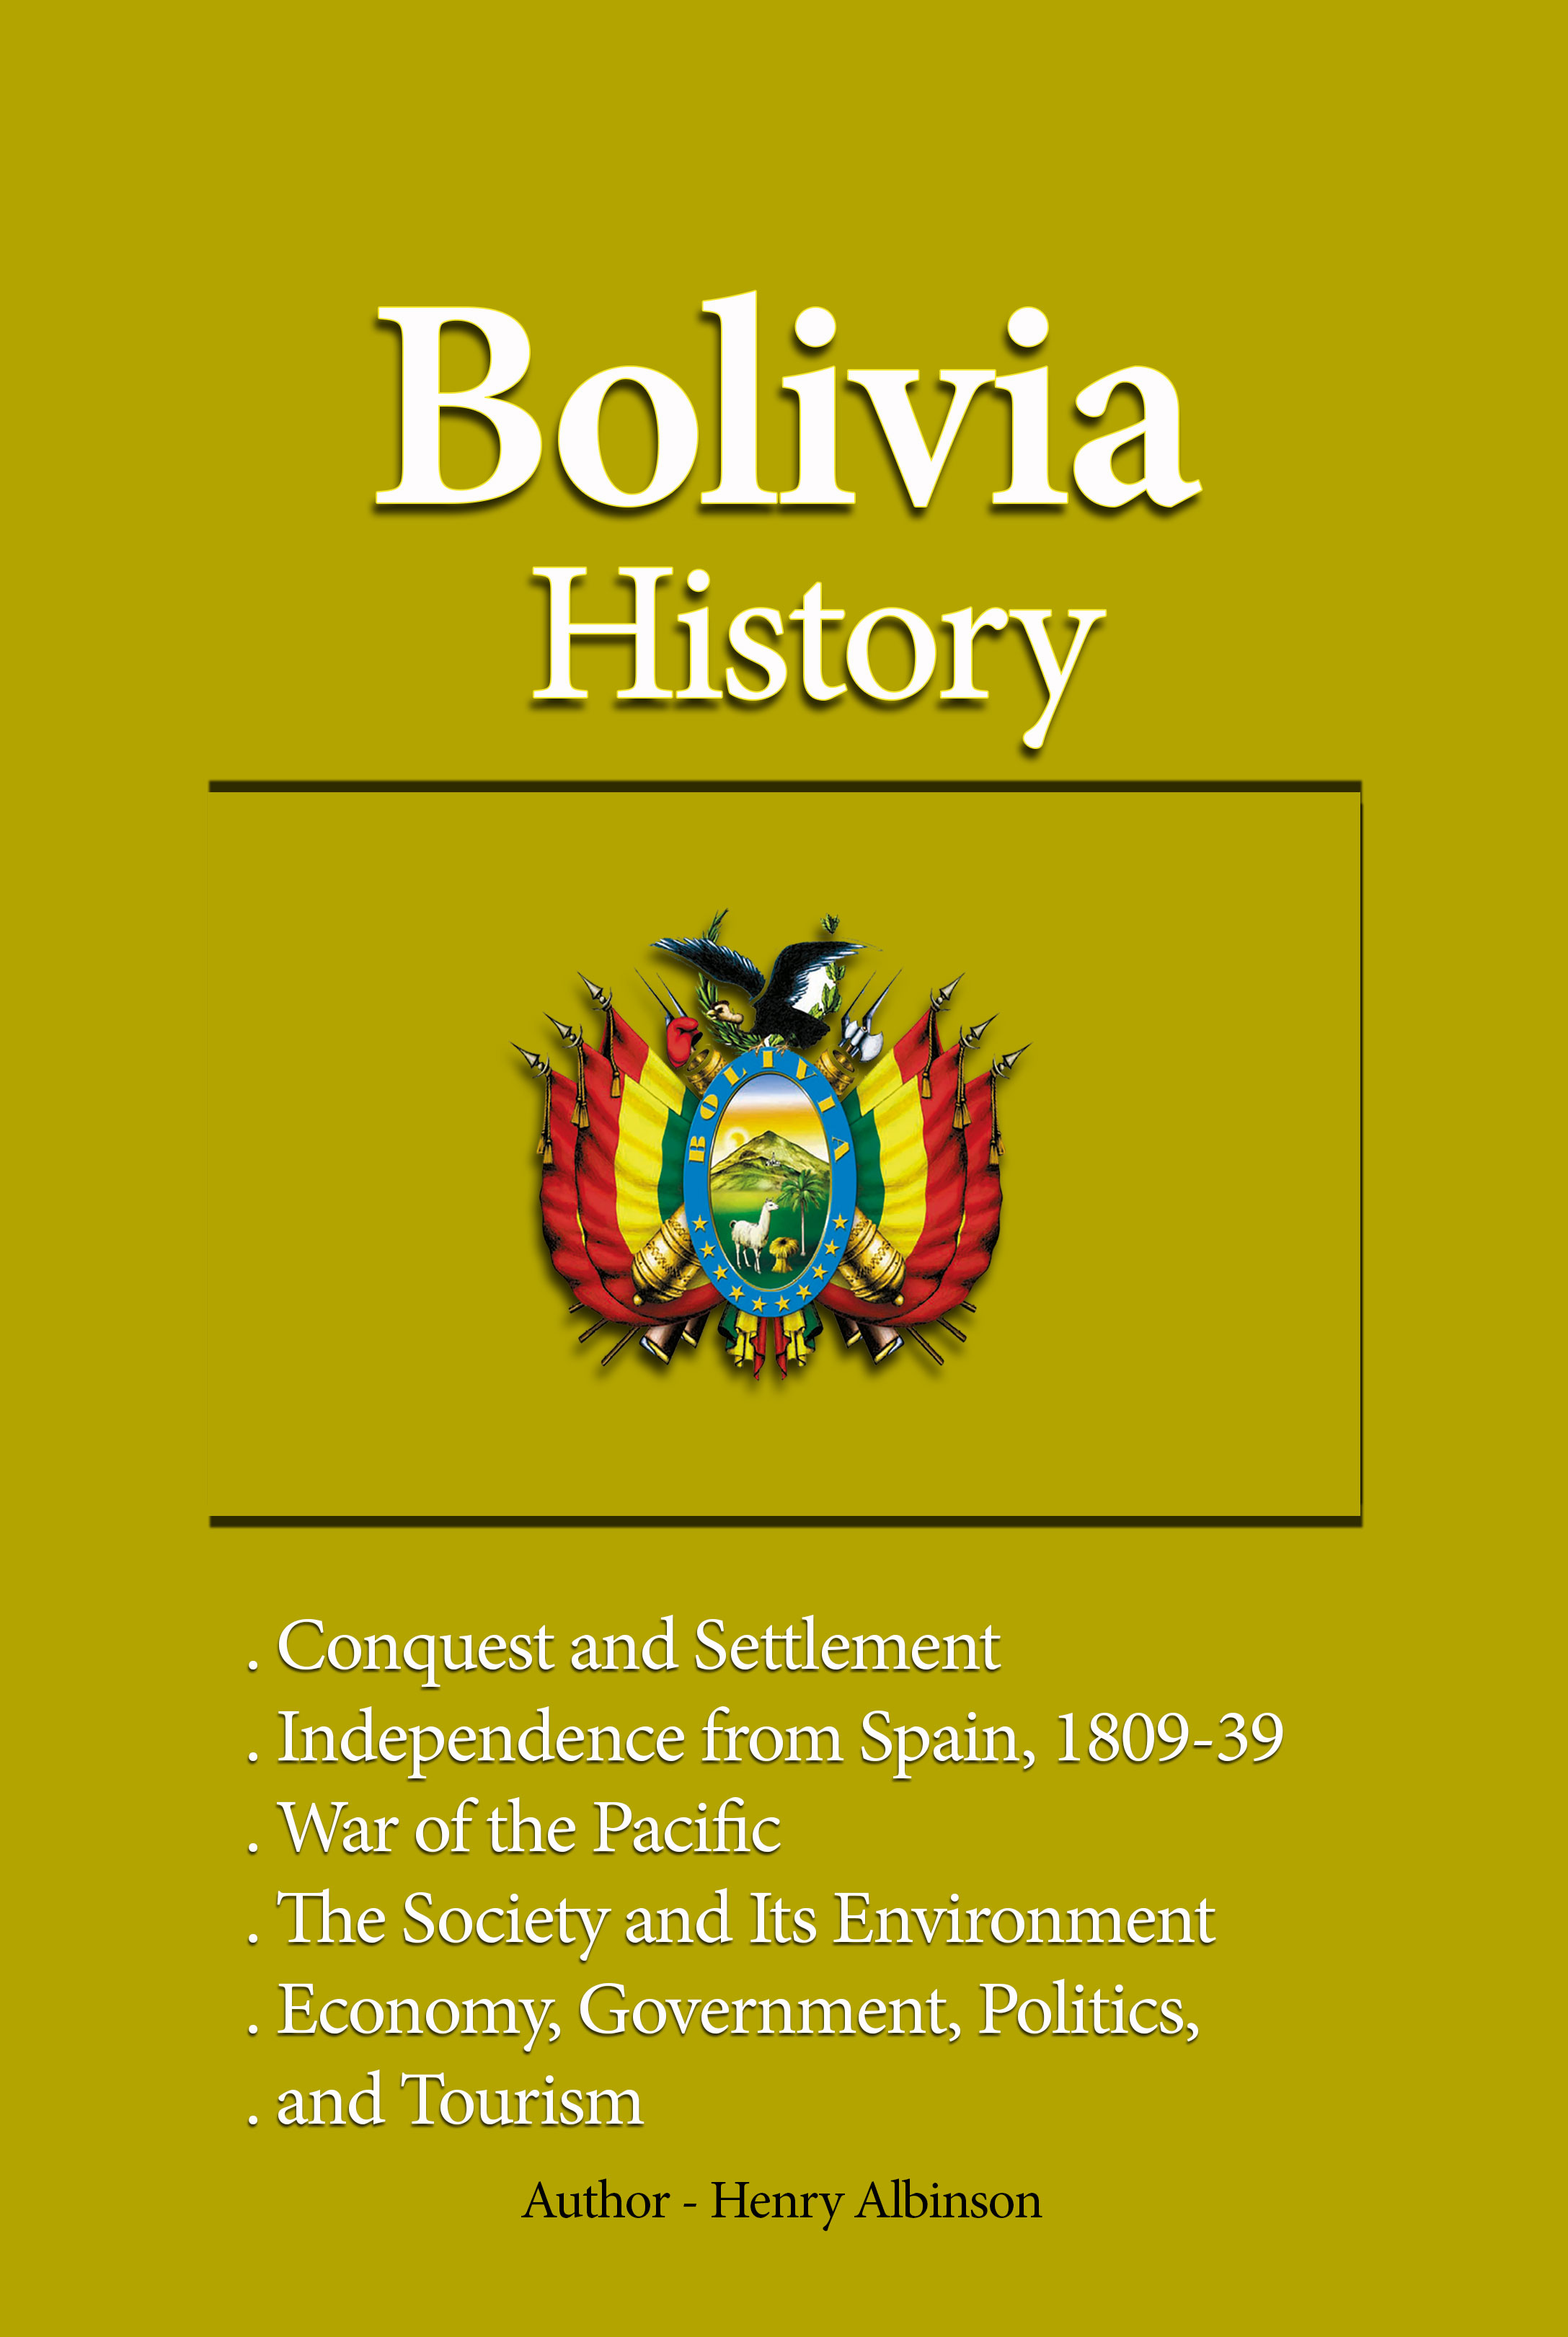 the societal civil and political changes in bolivia since its independence from spain in 1825 Prior to its independence  while the mixed-race population campaigned for civil rights although france recognized haitian independence in 1825.